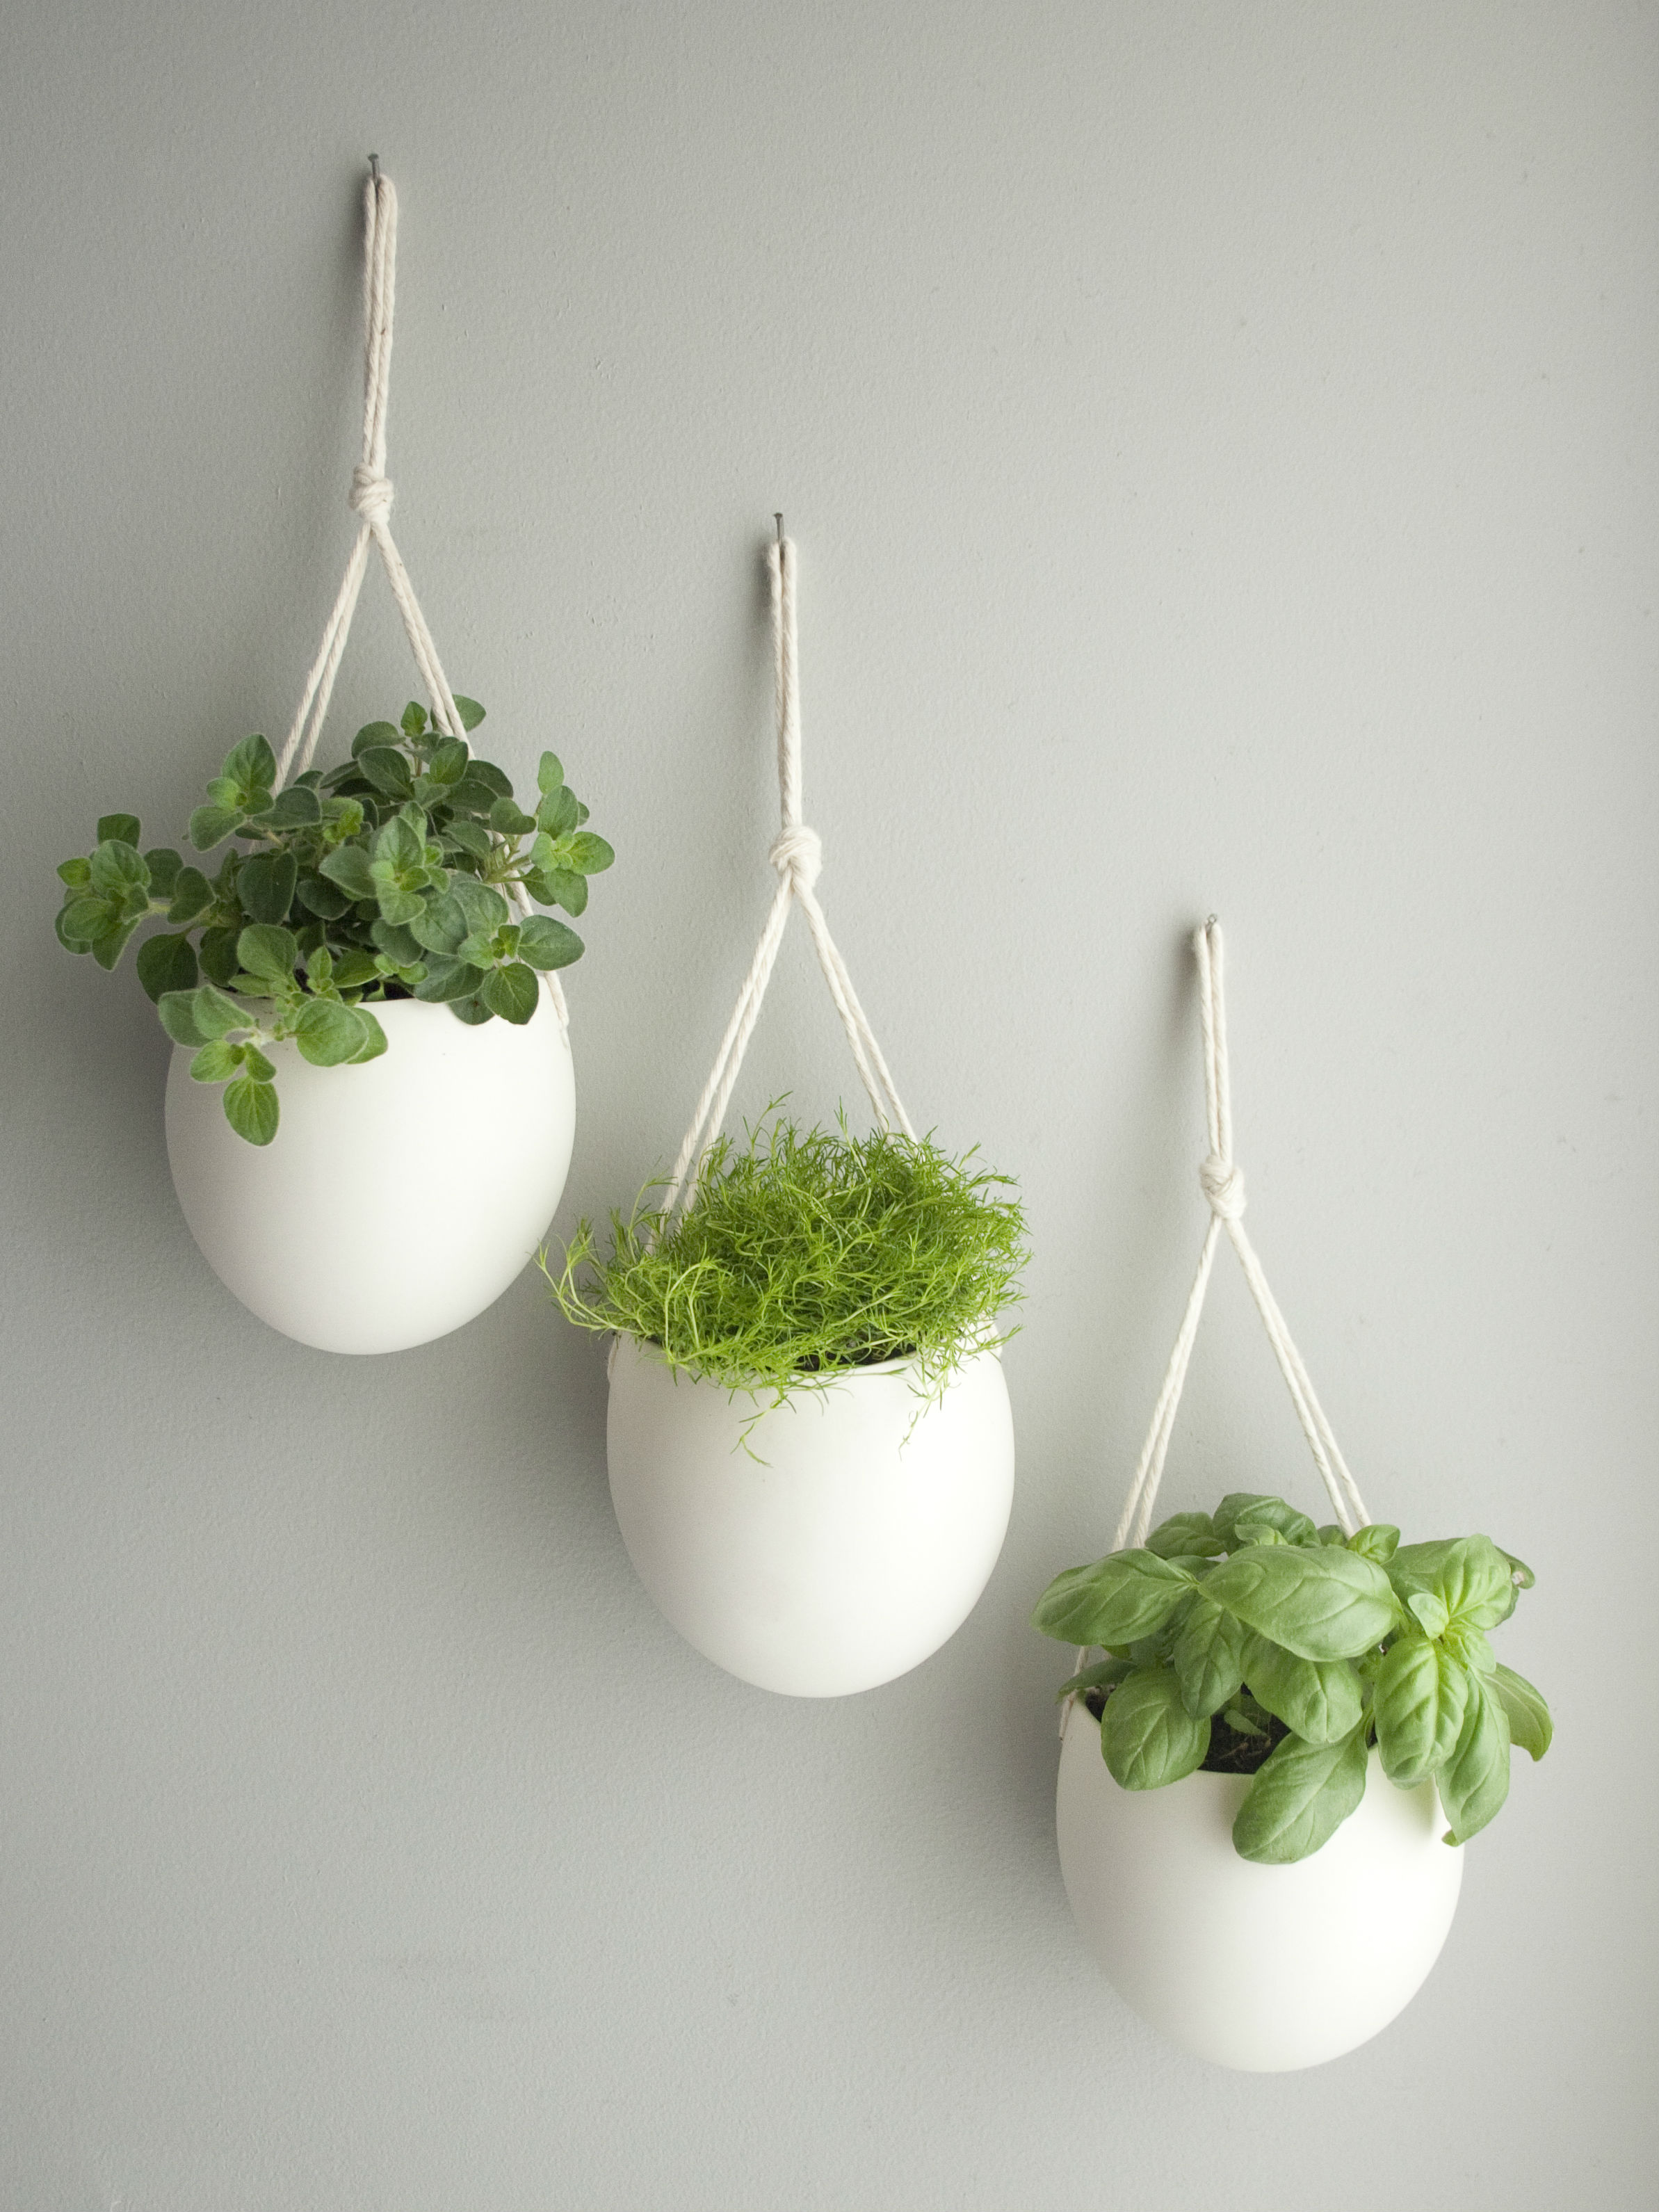 Porcelain Planter by designer Farrah Sit The joy of plants